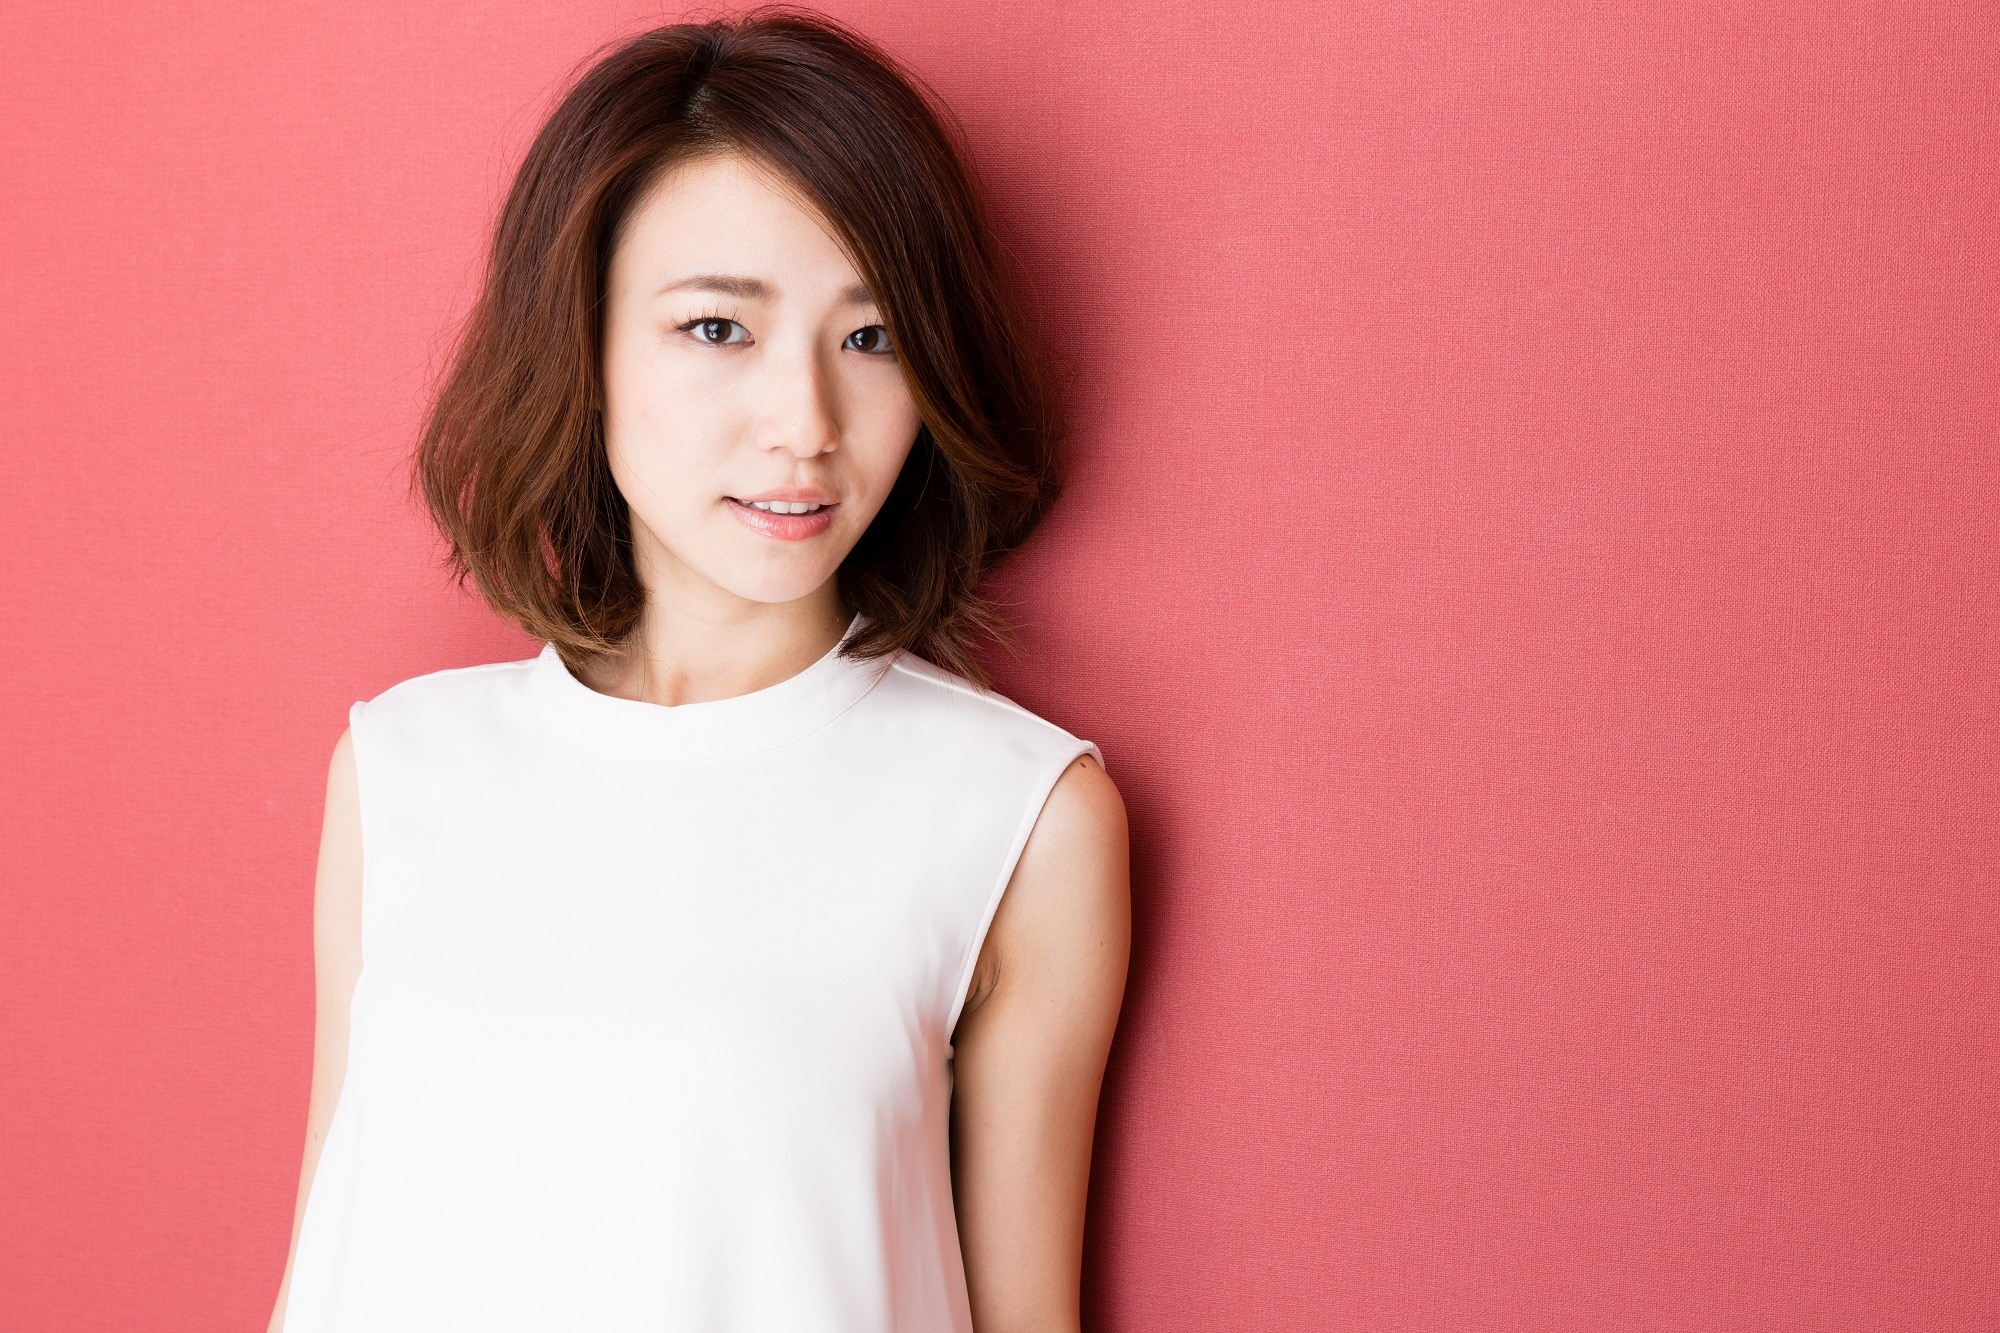 Party hairstyles for short hair: Asian woman with bouncy layered bob